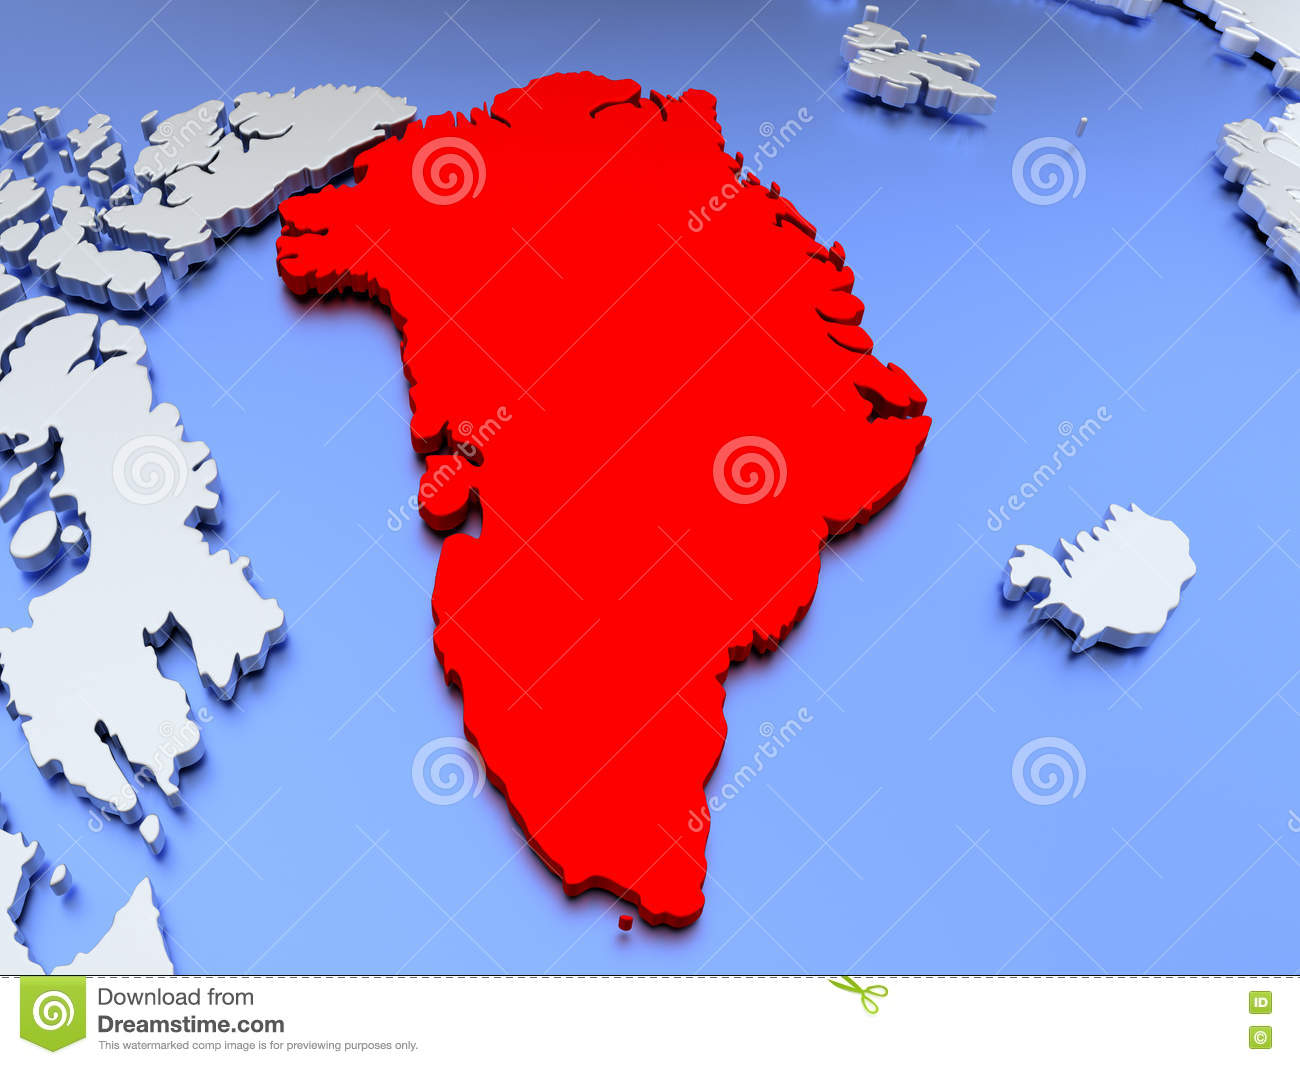 Greenland on world map stock illustration illustration of globe download comp gumiabroncs Image collections